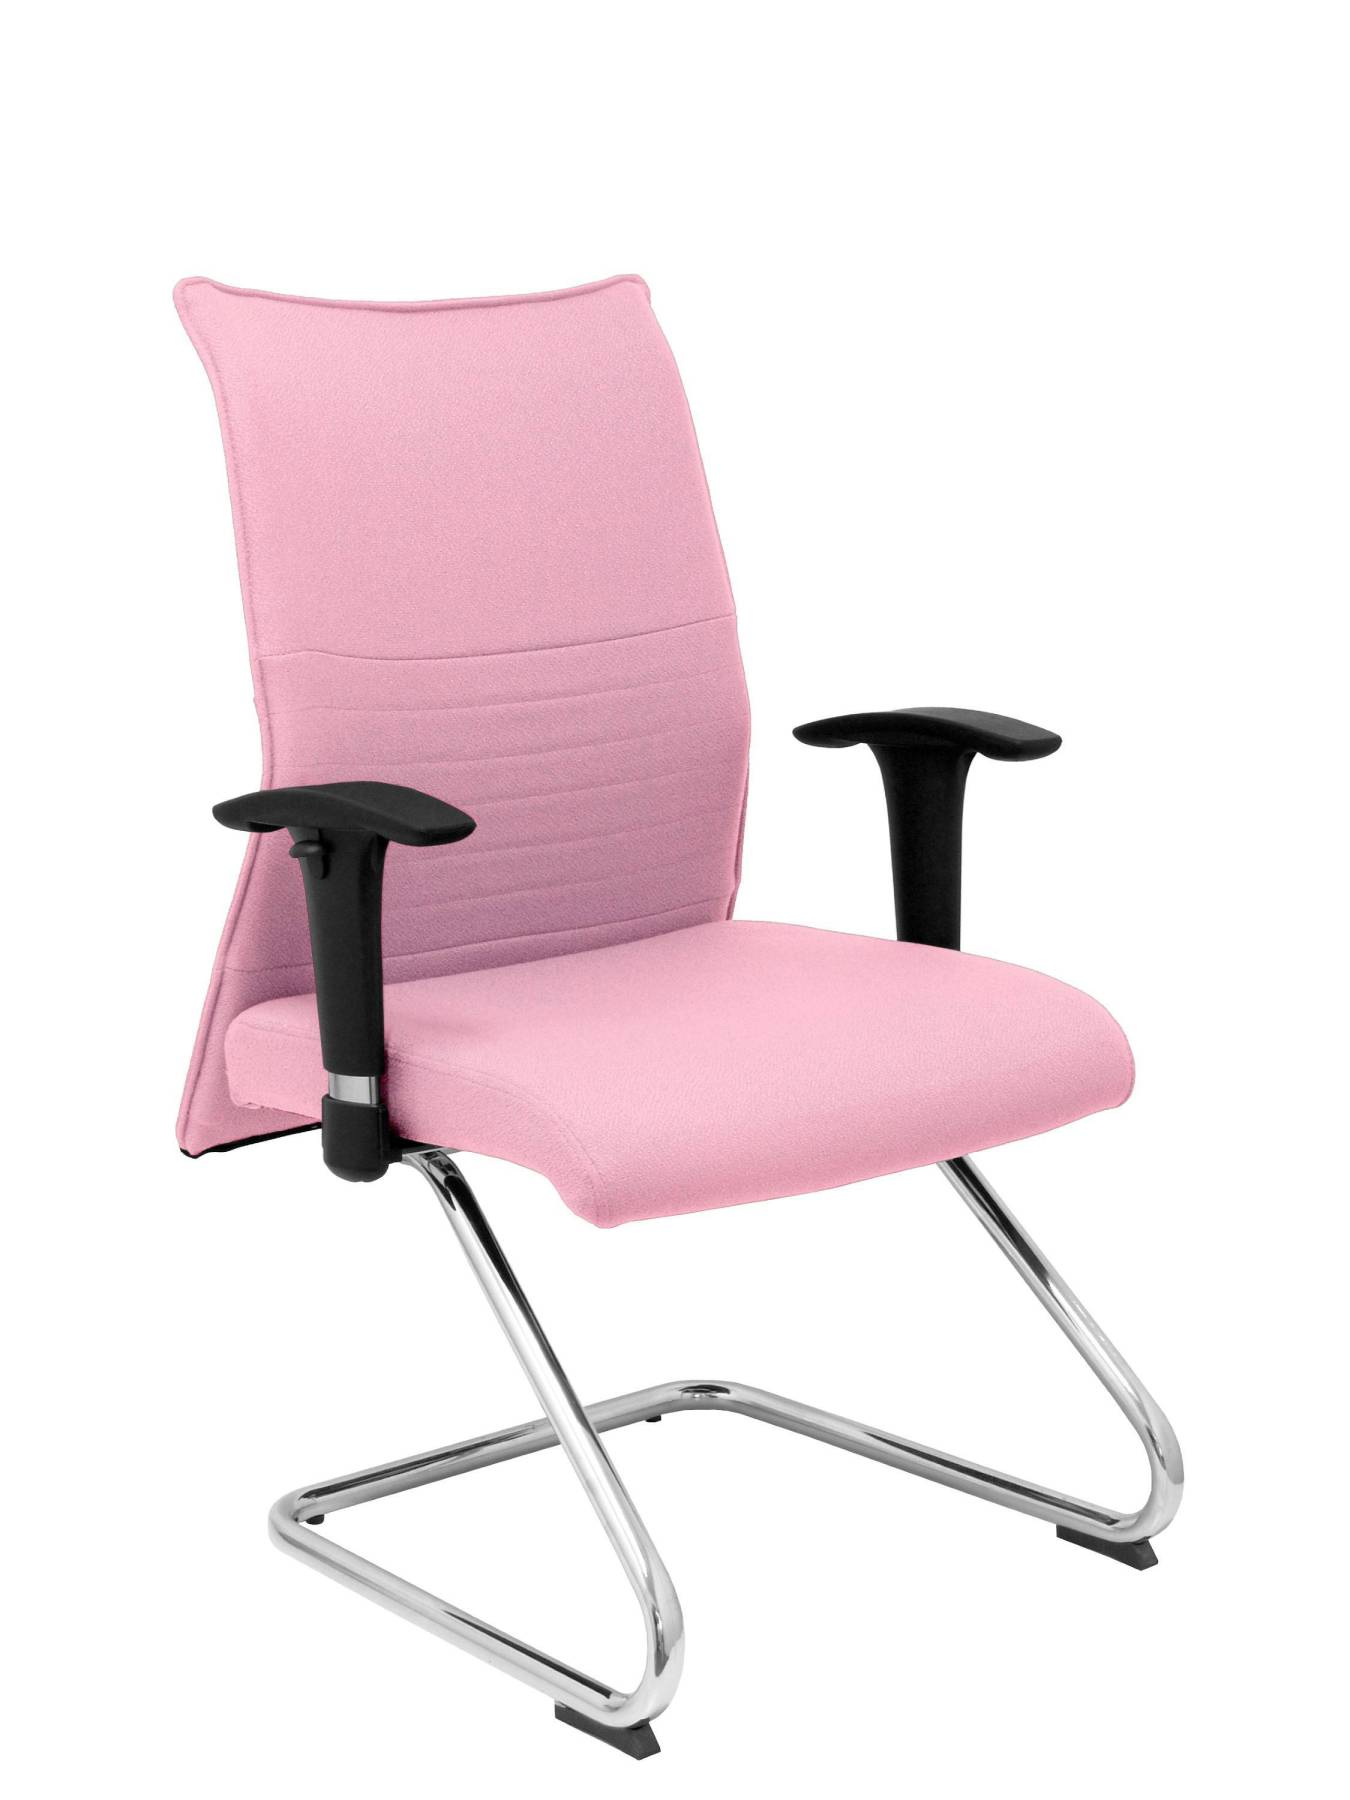 Armchair Confidante Ergonomic For Visits With Skate Chrome Up Seat And Backstop Upholstered In BALI Tissue Pink Colour P